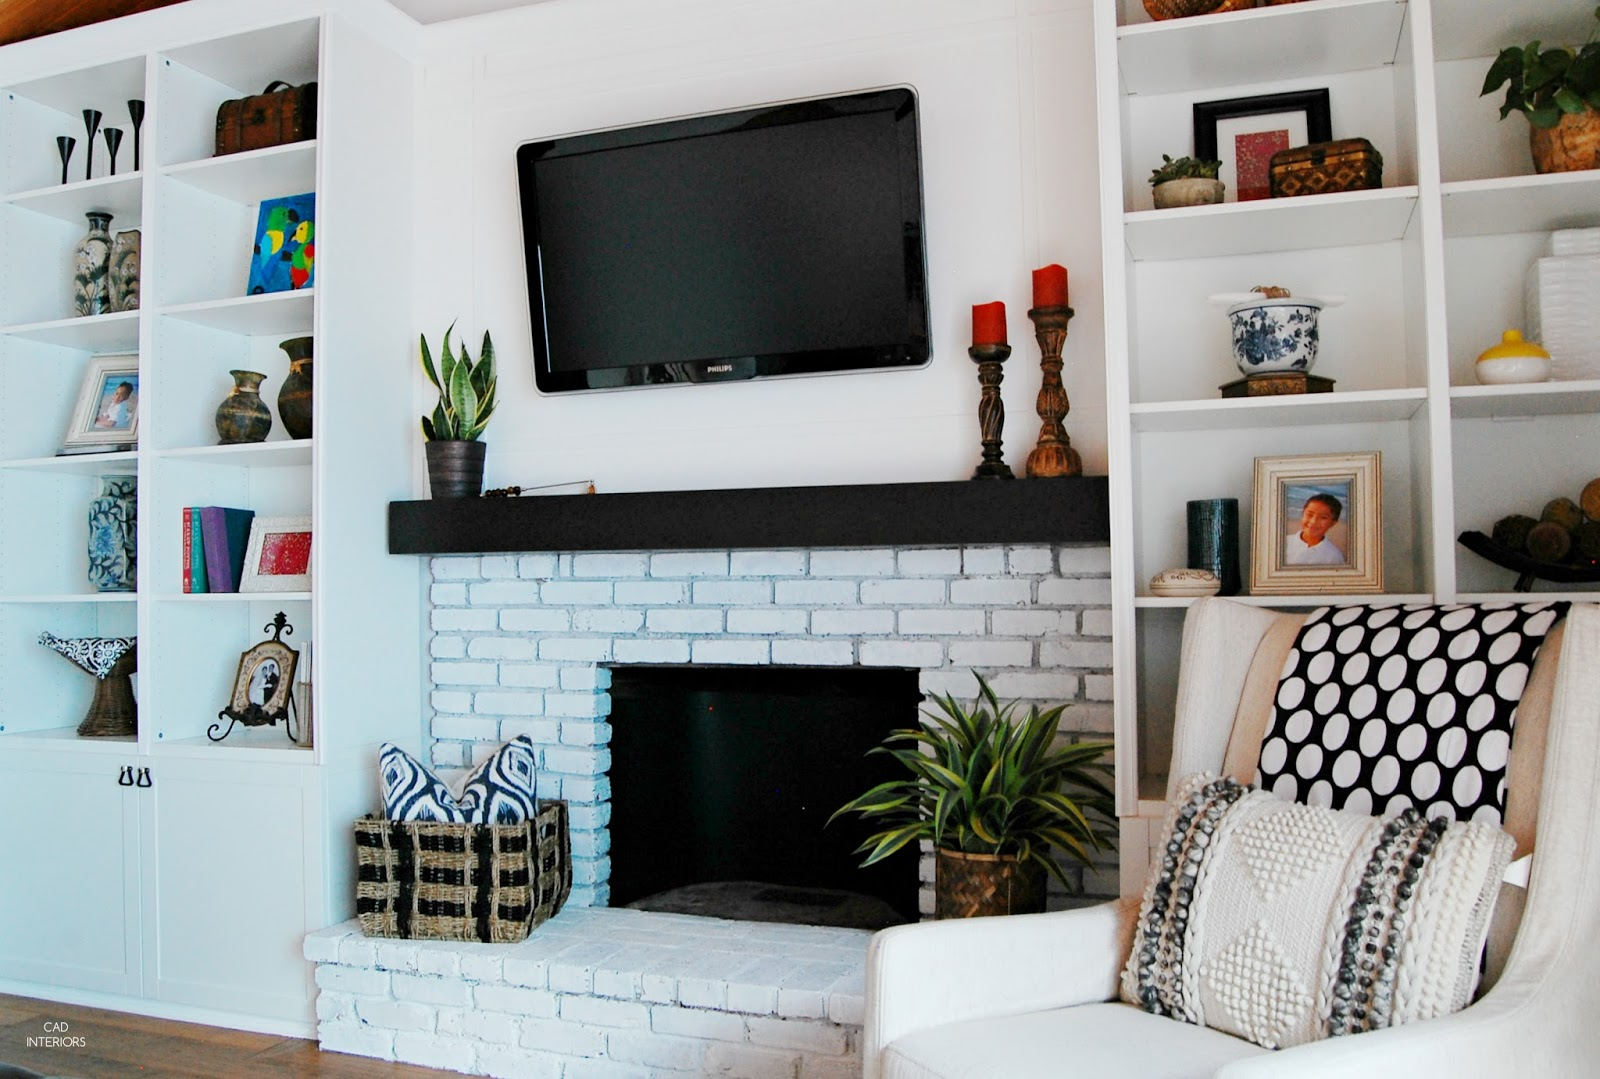 one room challenge modern bohemian eclectic vintage transitional interior design decorating orc DIY built-ins fireplace brick whitewash makeover